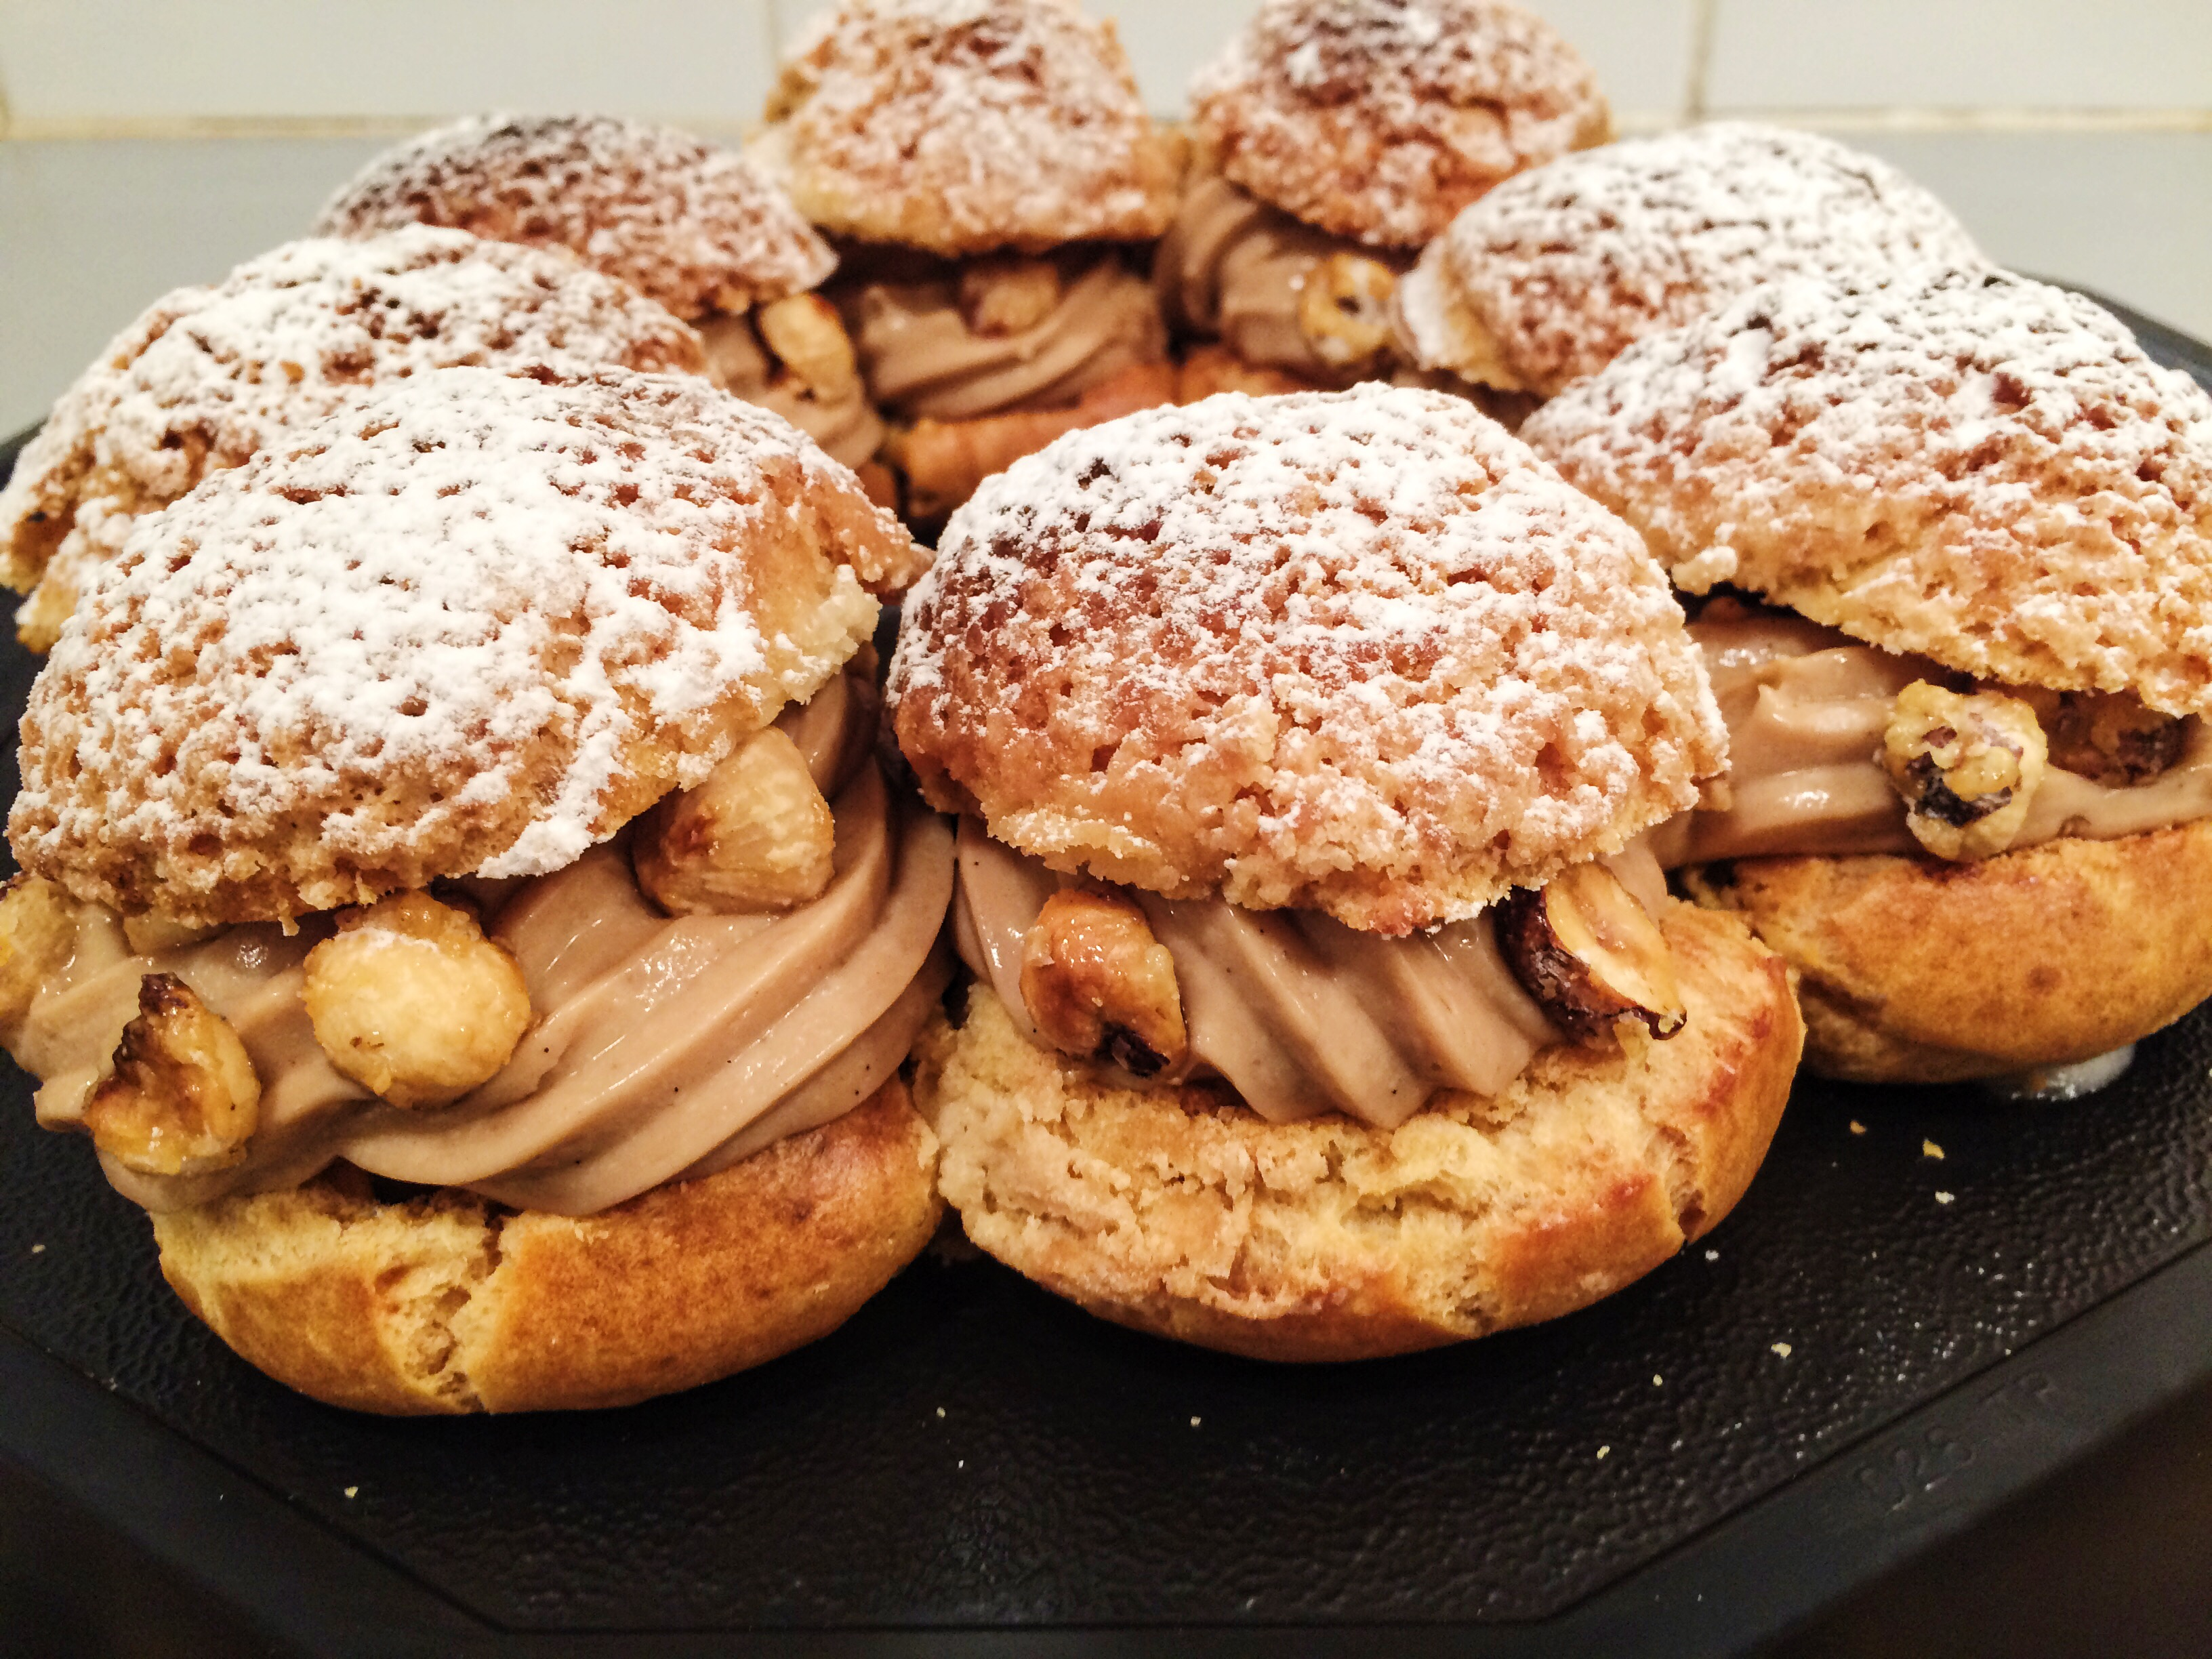 paris brest recette de philippe conticini. Black Bedroom Furniture Sets. Home Design Ideas